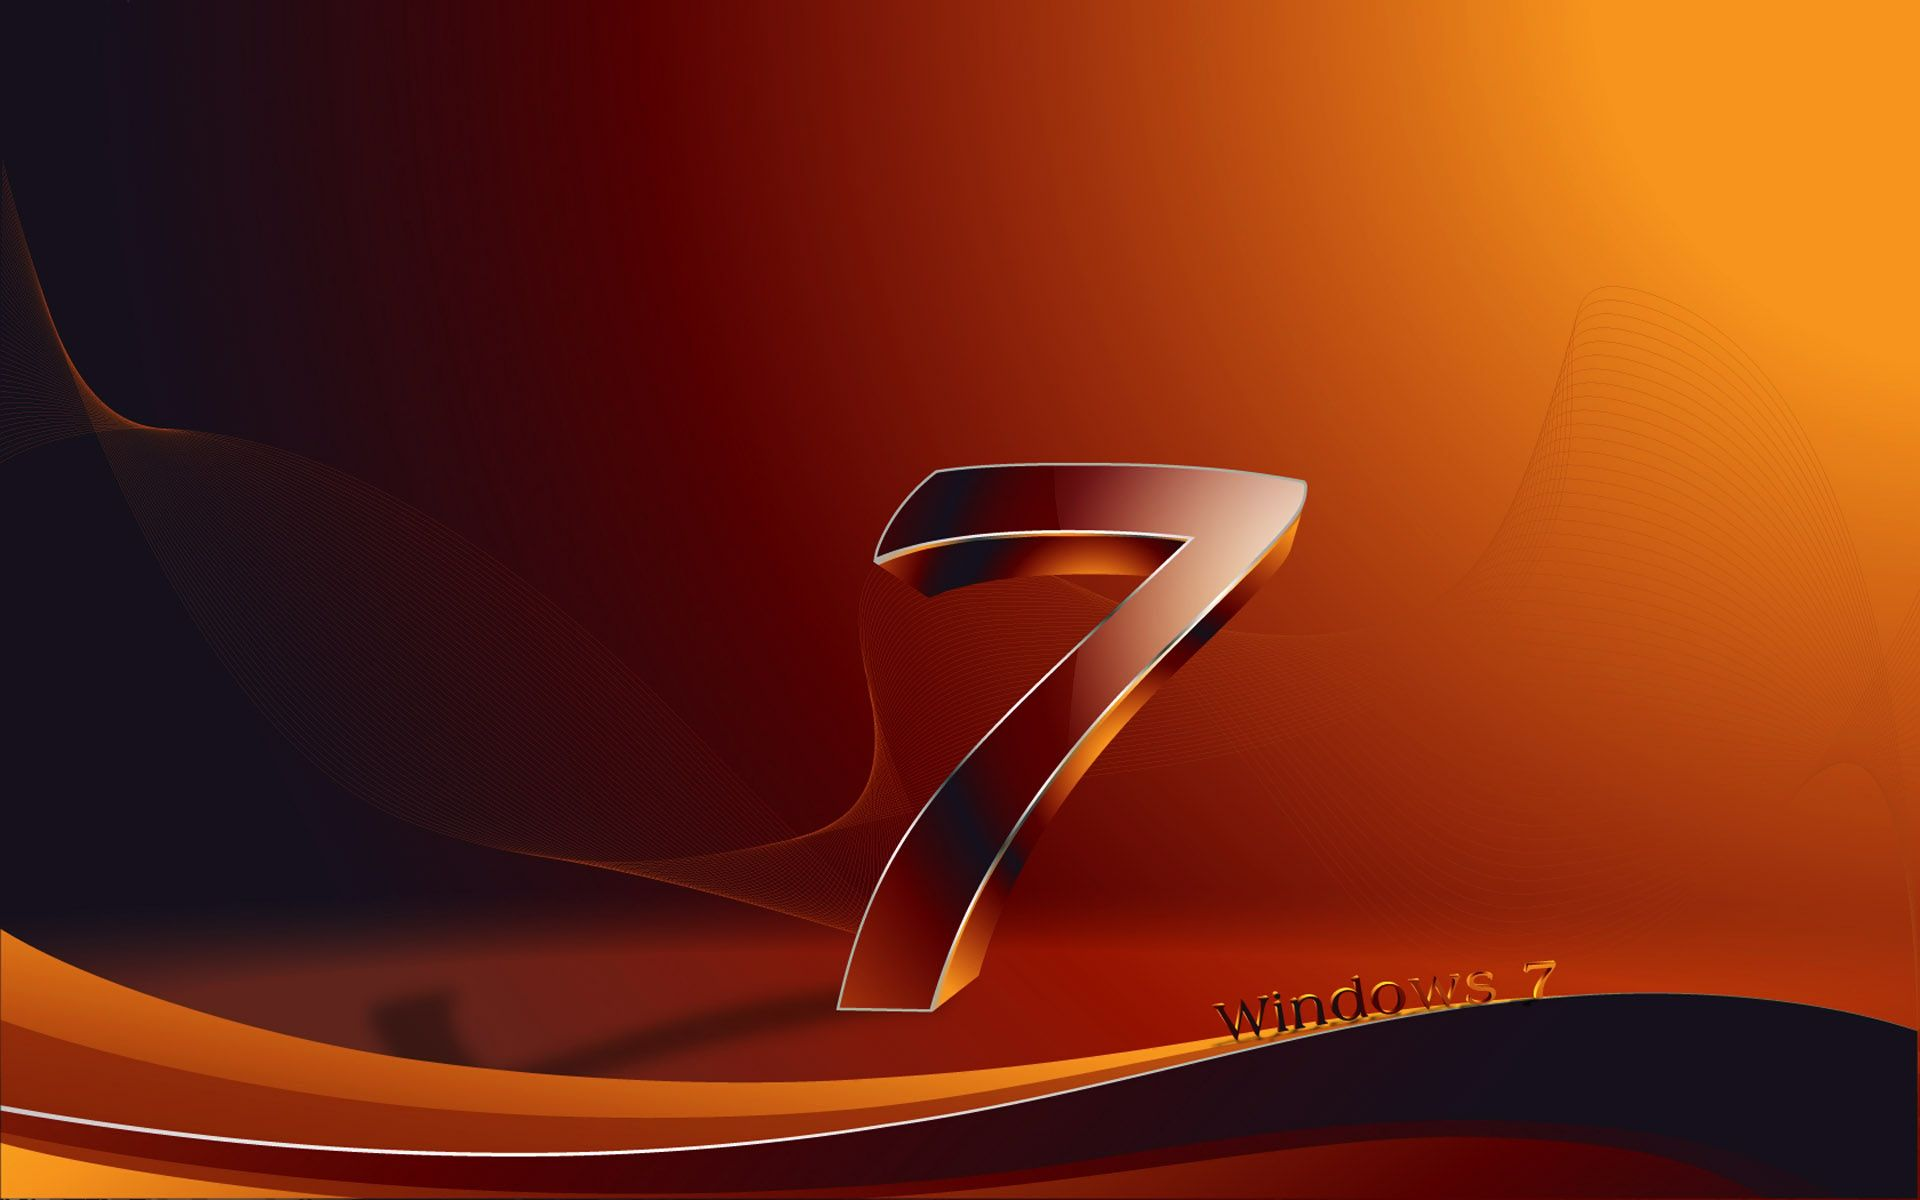 3d desktop backgrounds windows 7 httpbackgroundwallpaperpics com3d